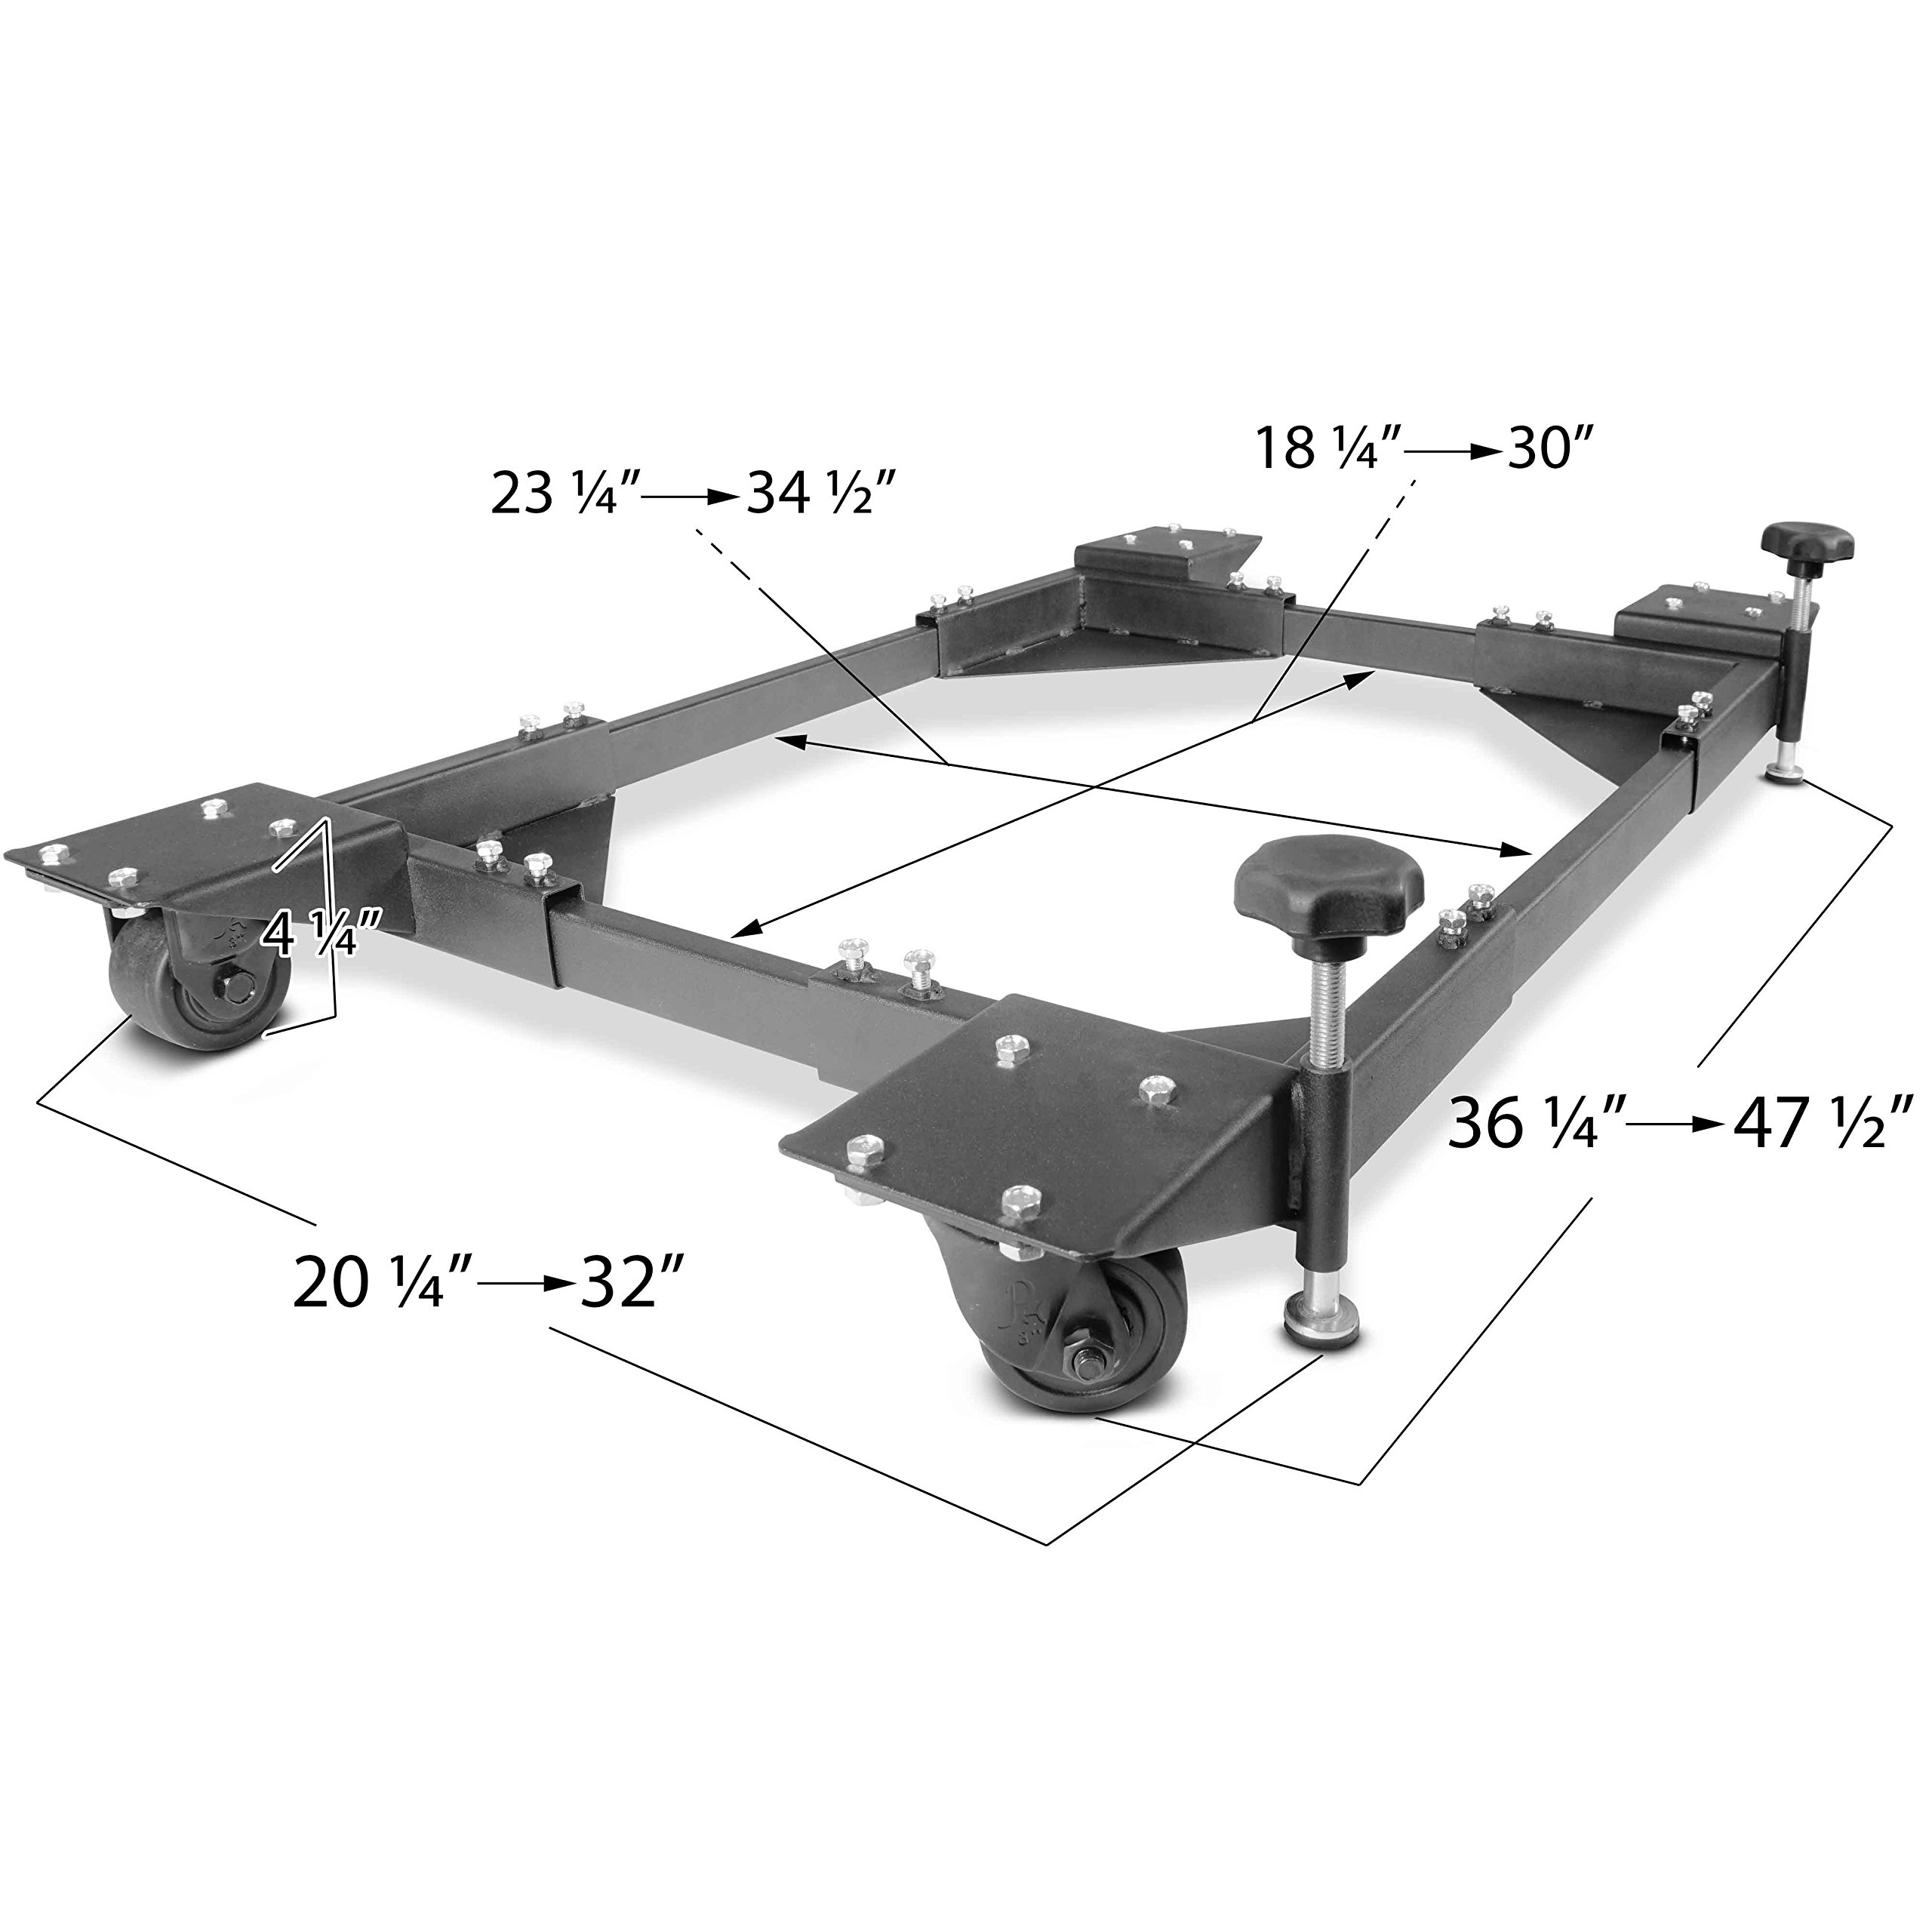 Titan Adjustable Mobile Base Dolly 1200 lb Capacity HD Universal Power Tools - Make Your Workshop Portable & Easy To Use by Titan Attachments (Image #2)